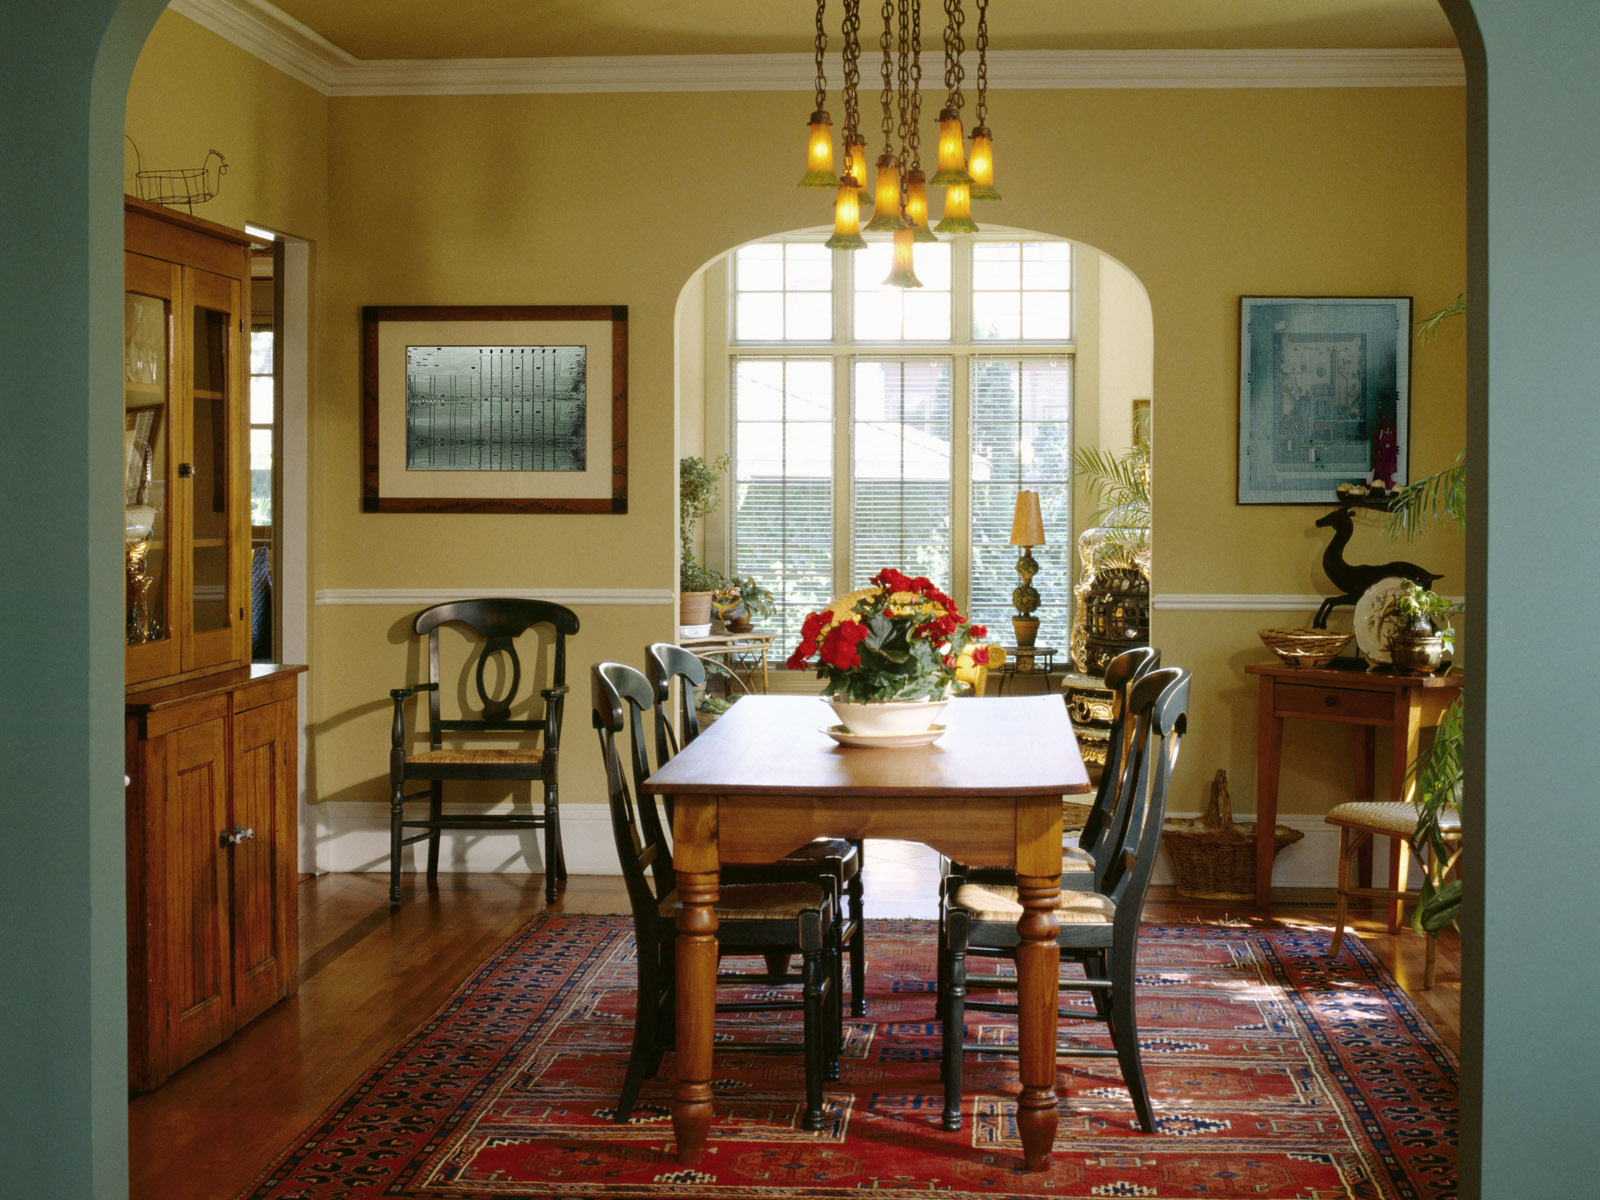 Dining room lighting ideas fixtures